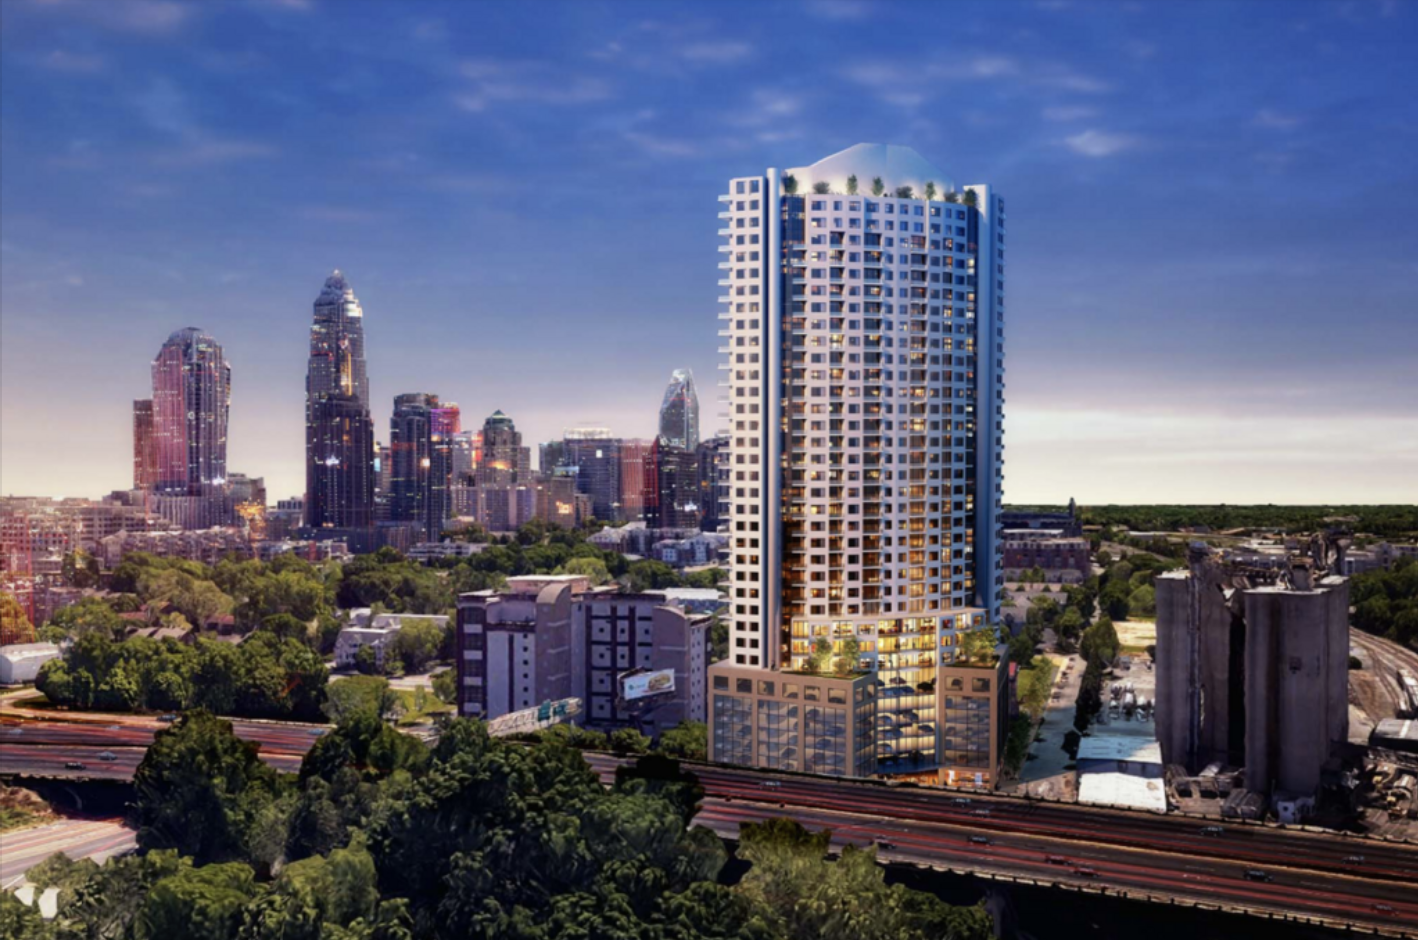 4th-ward-charlotte-tower-fmk-architects.png